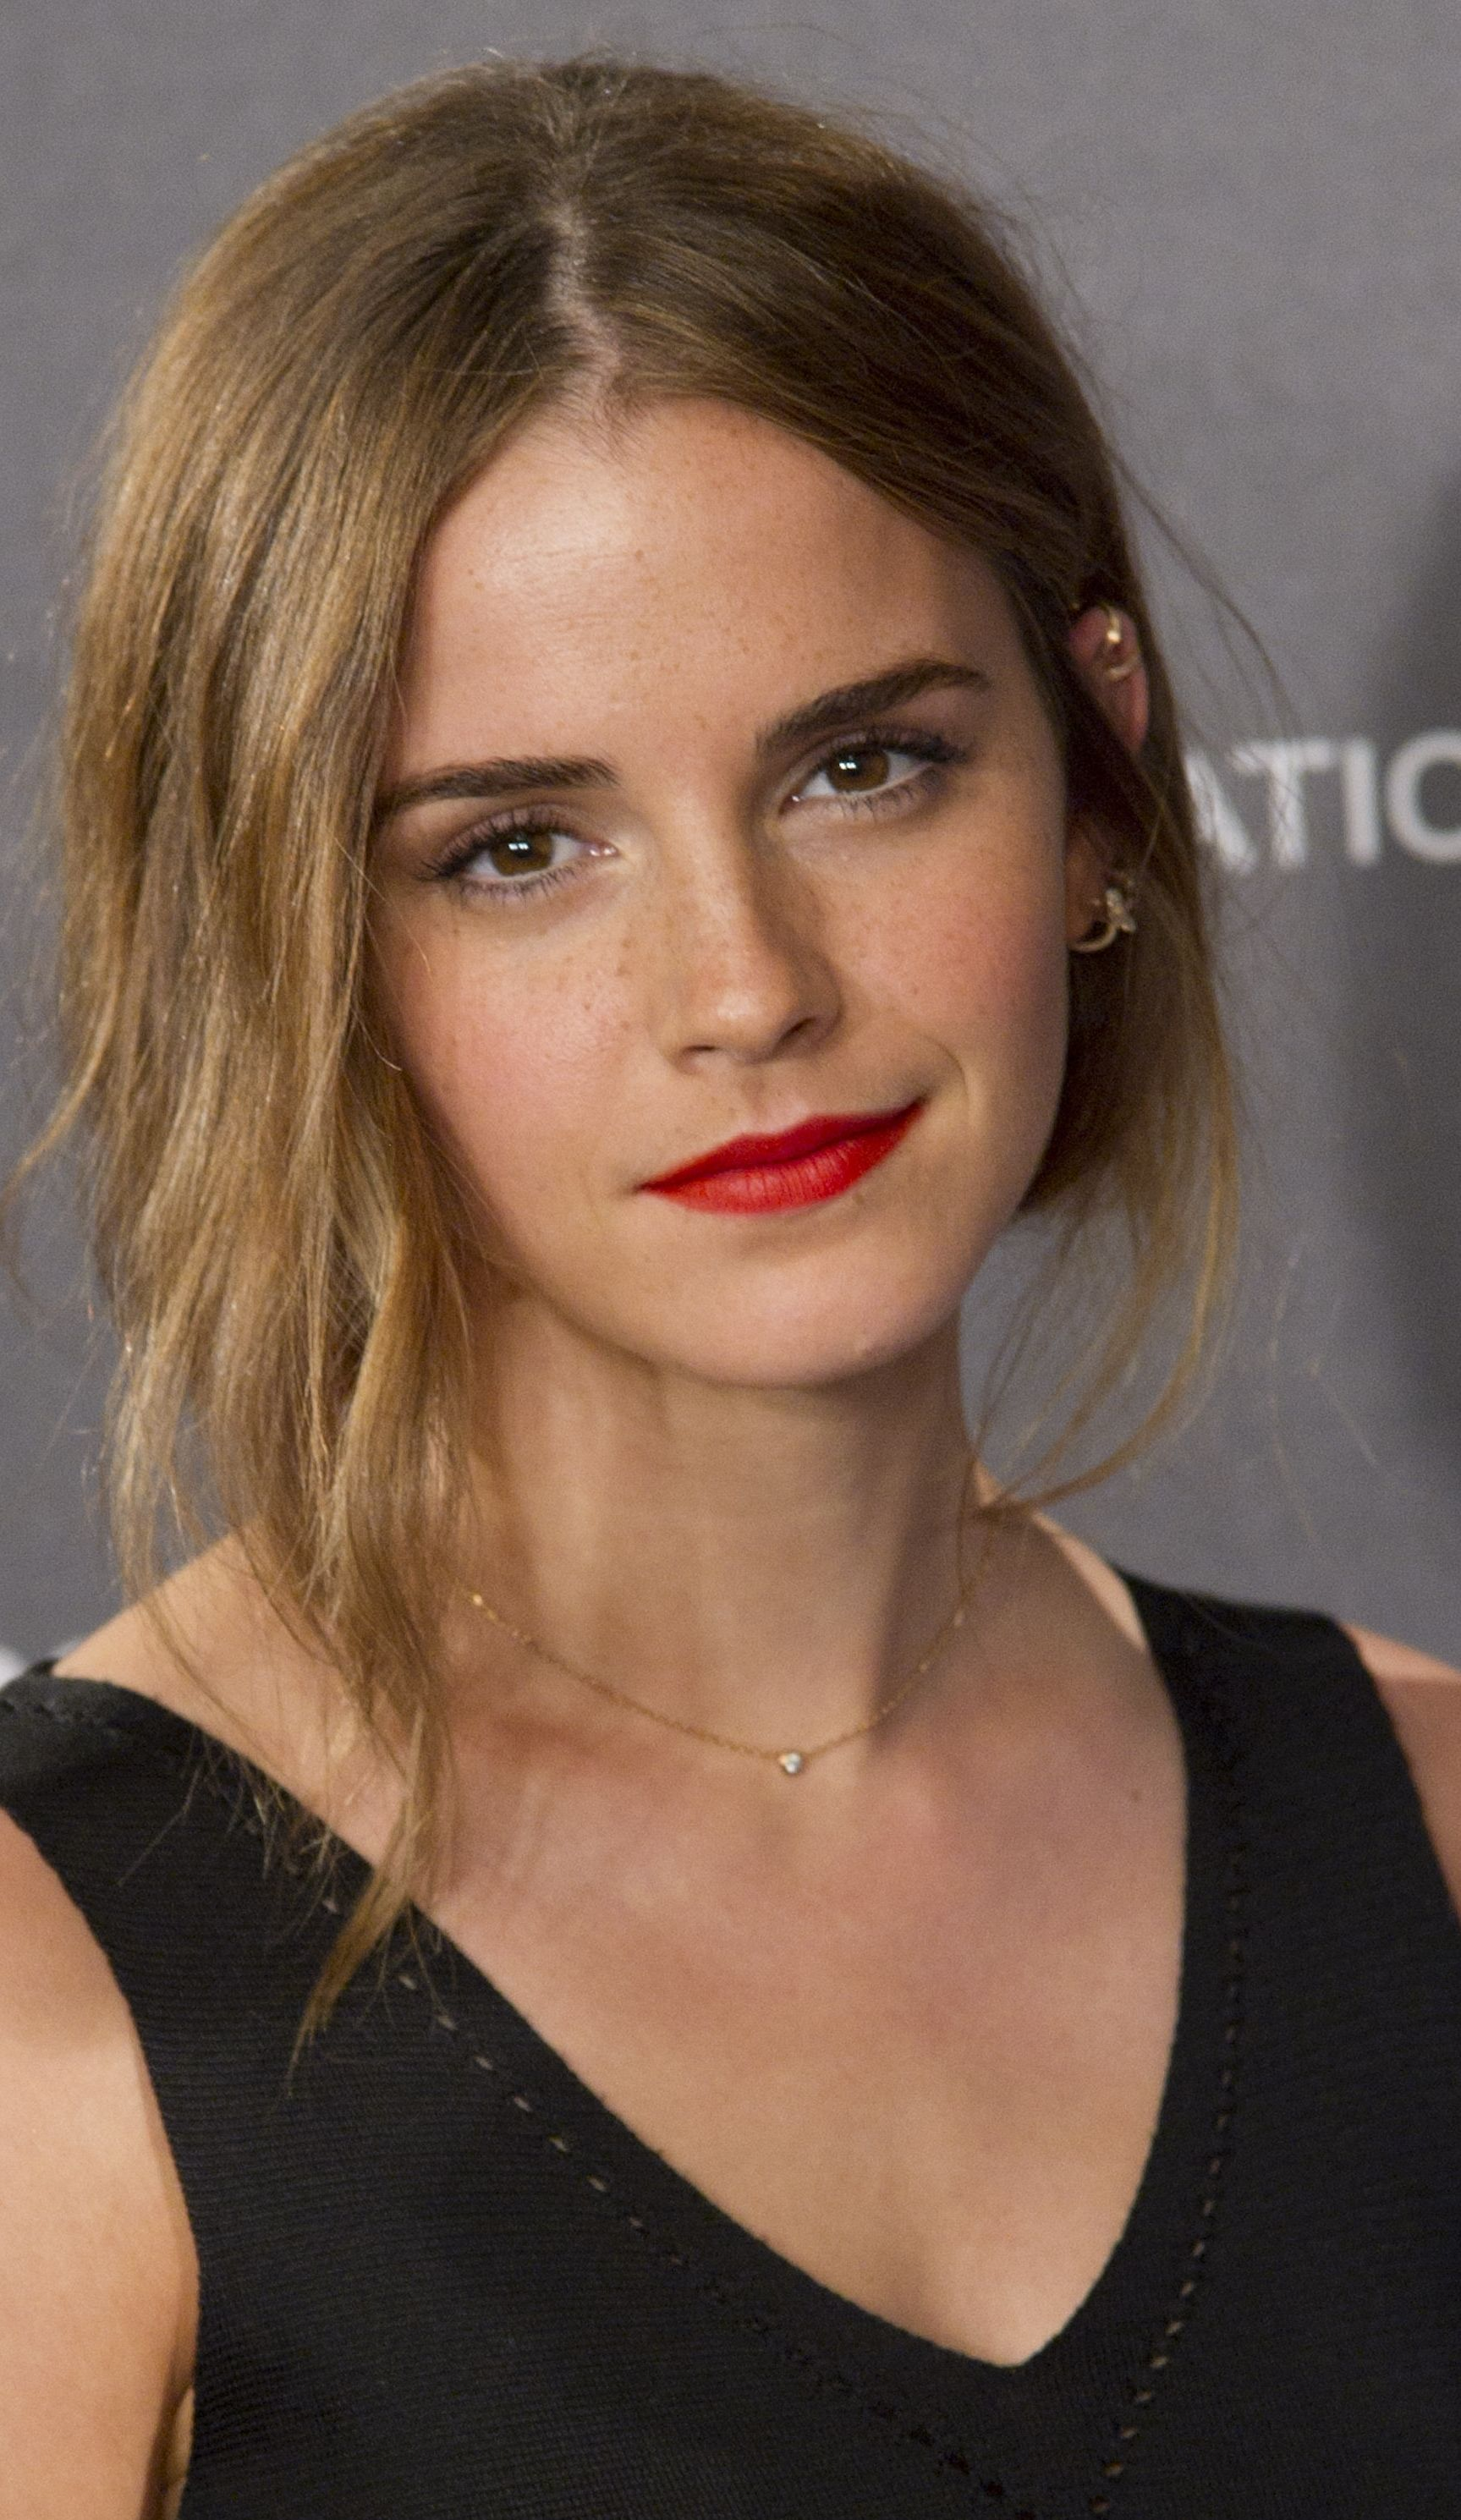 Watch Emma Watson In A Trailer For Colonia Emma Watson Makeup